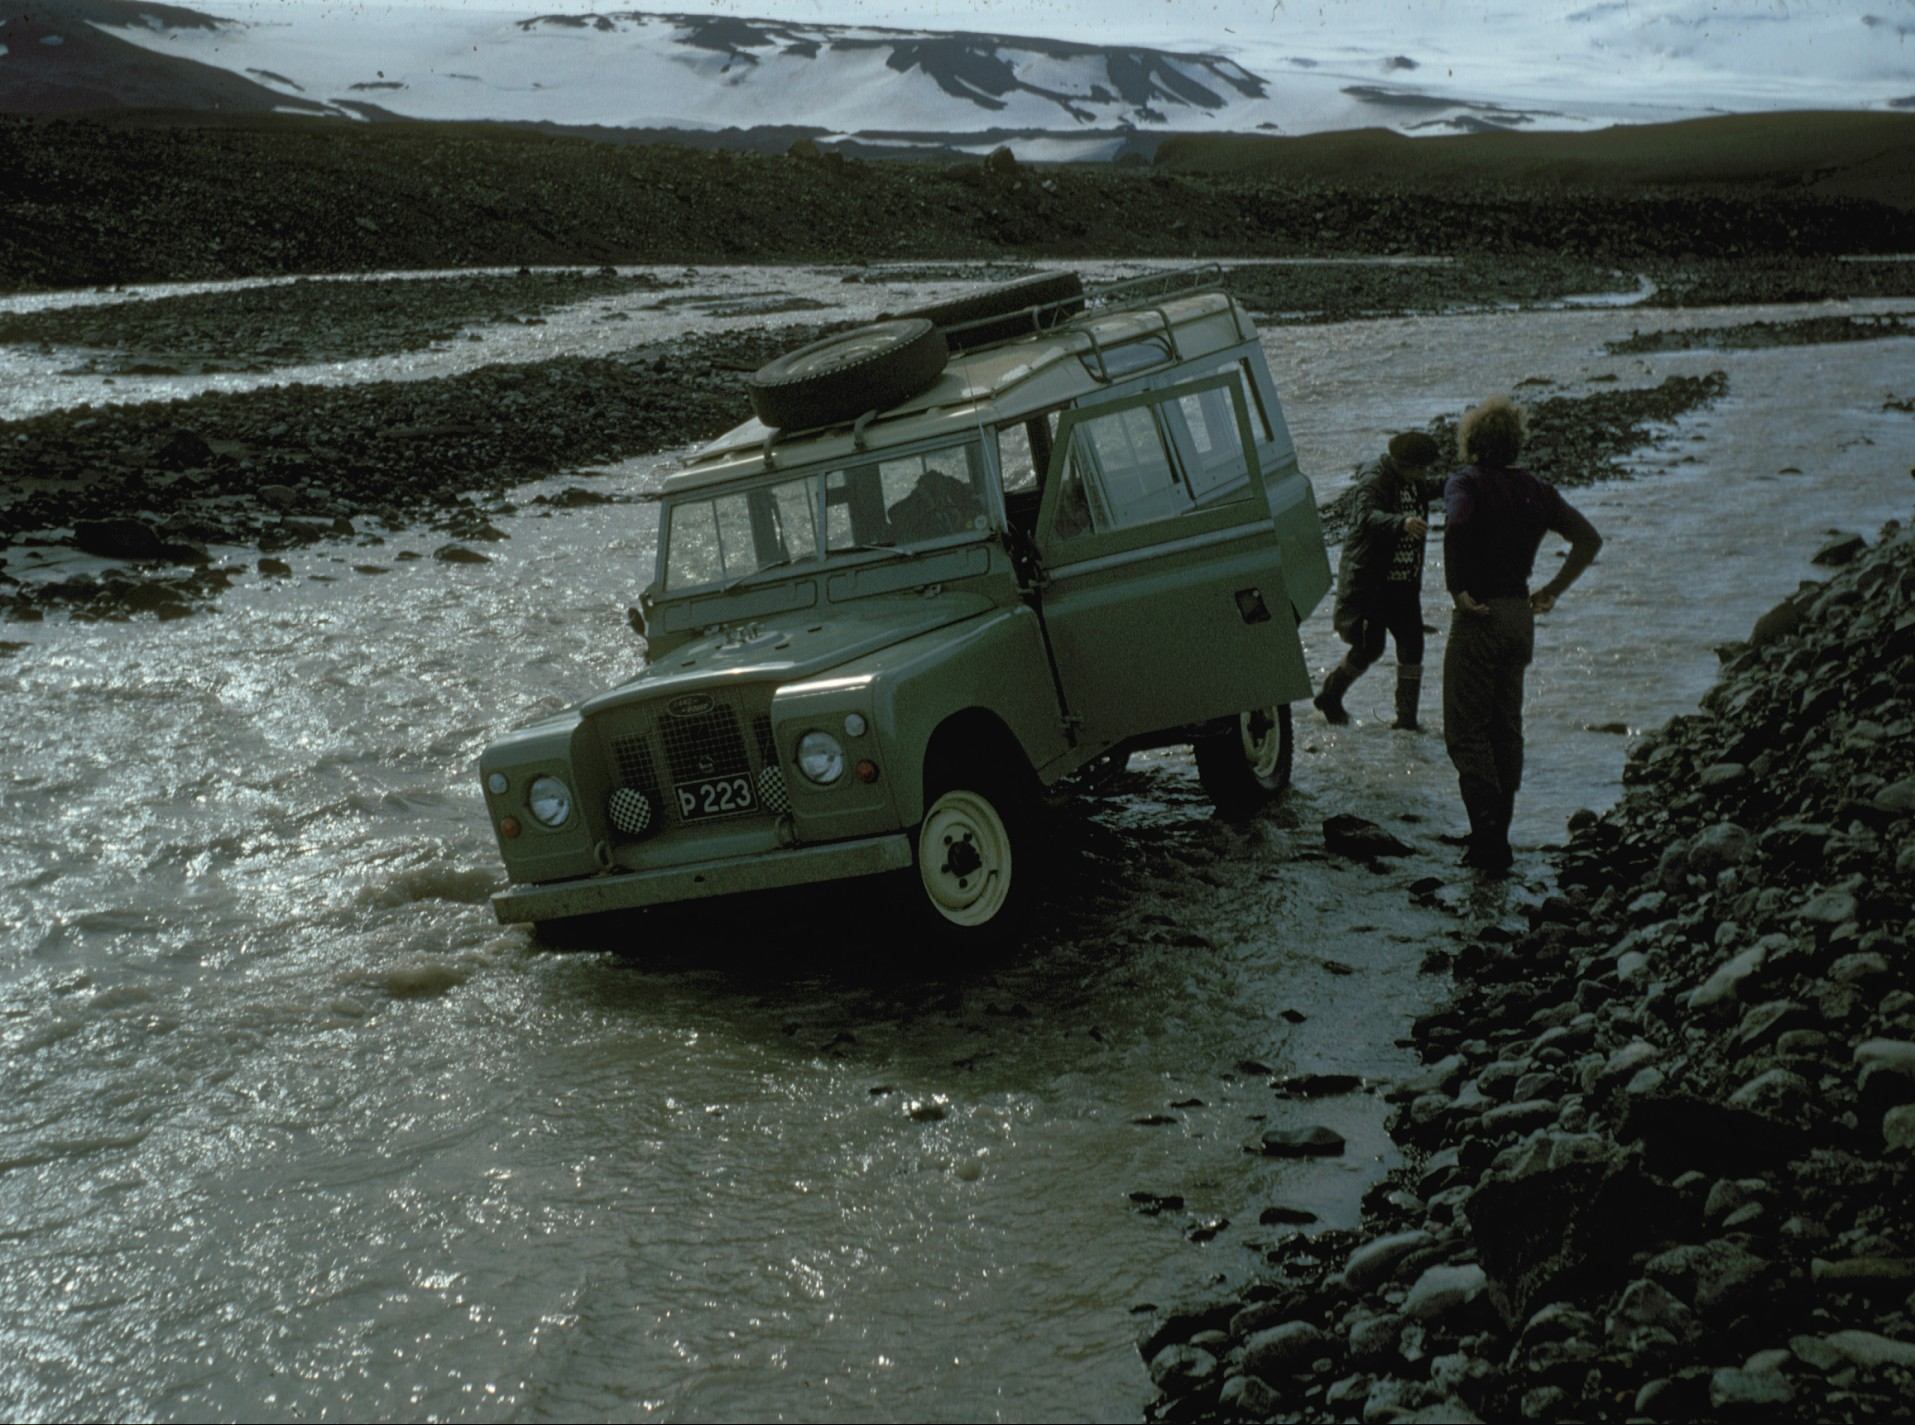 Image:Iceland car stuck in river 1972